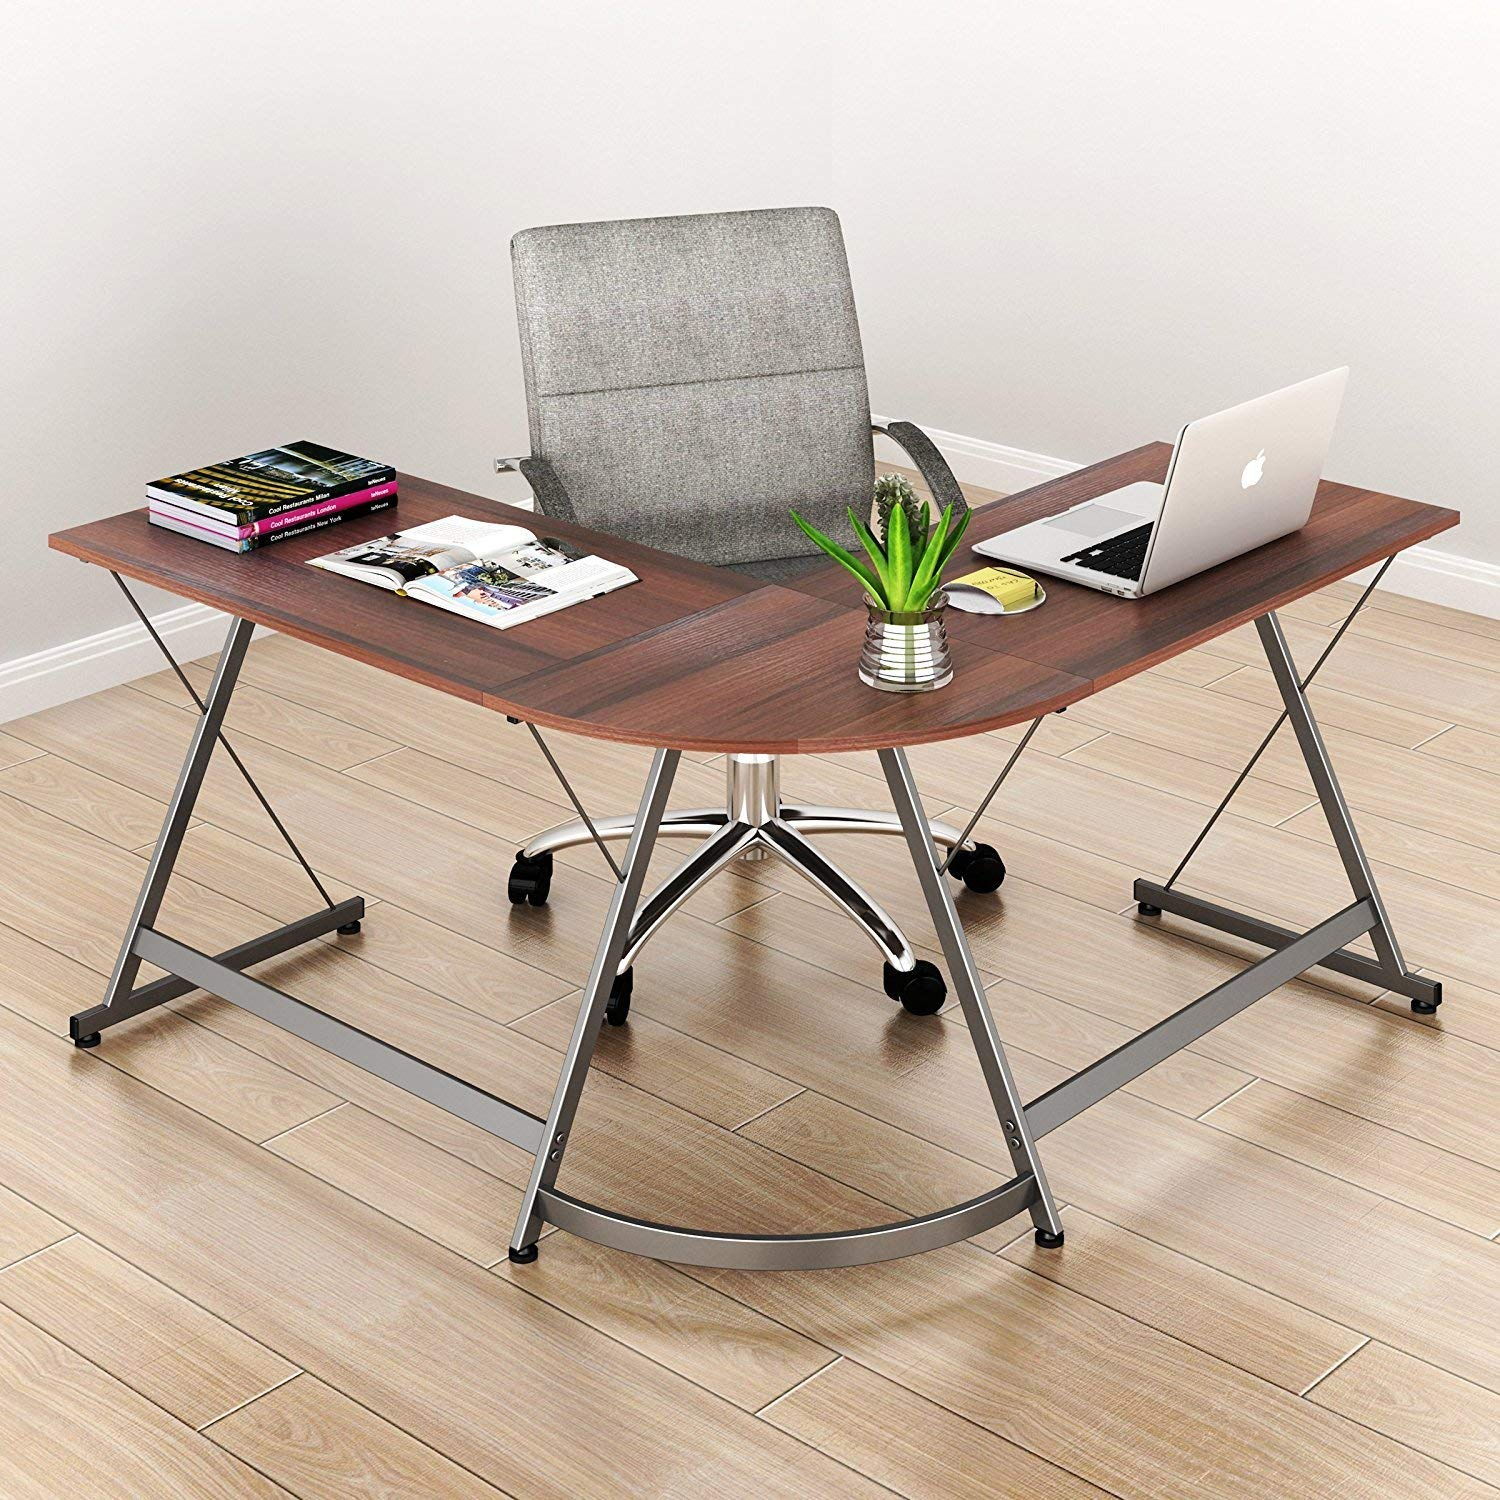 SHW L-Shaped Corner Desk for Home or Office